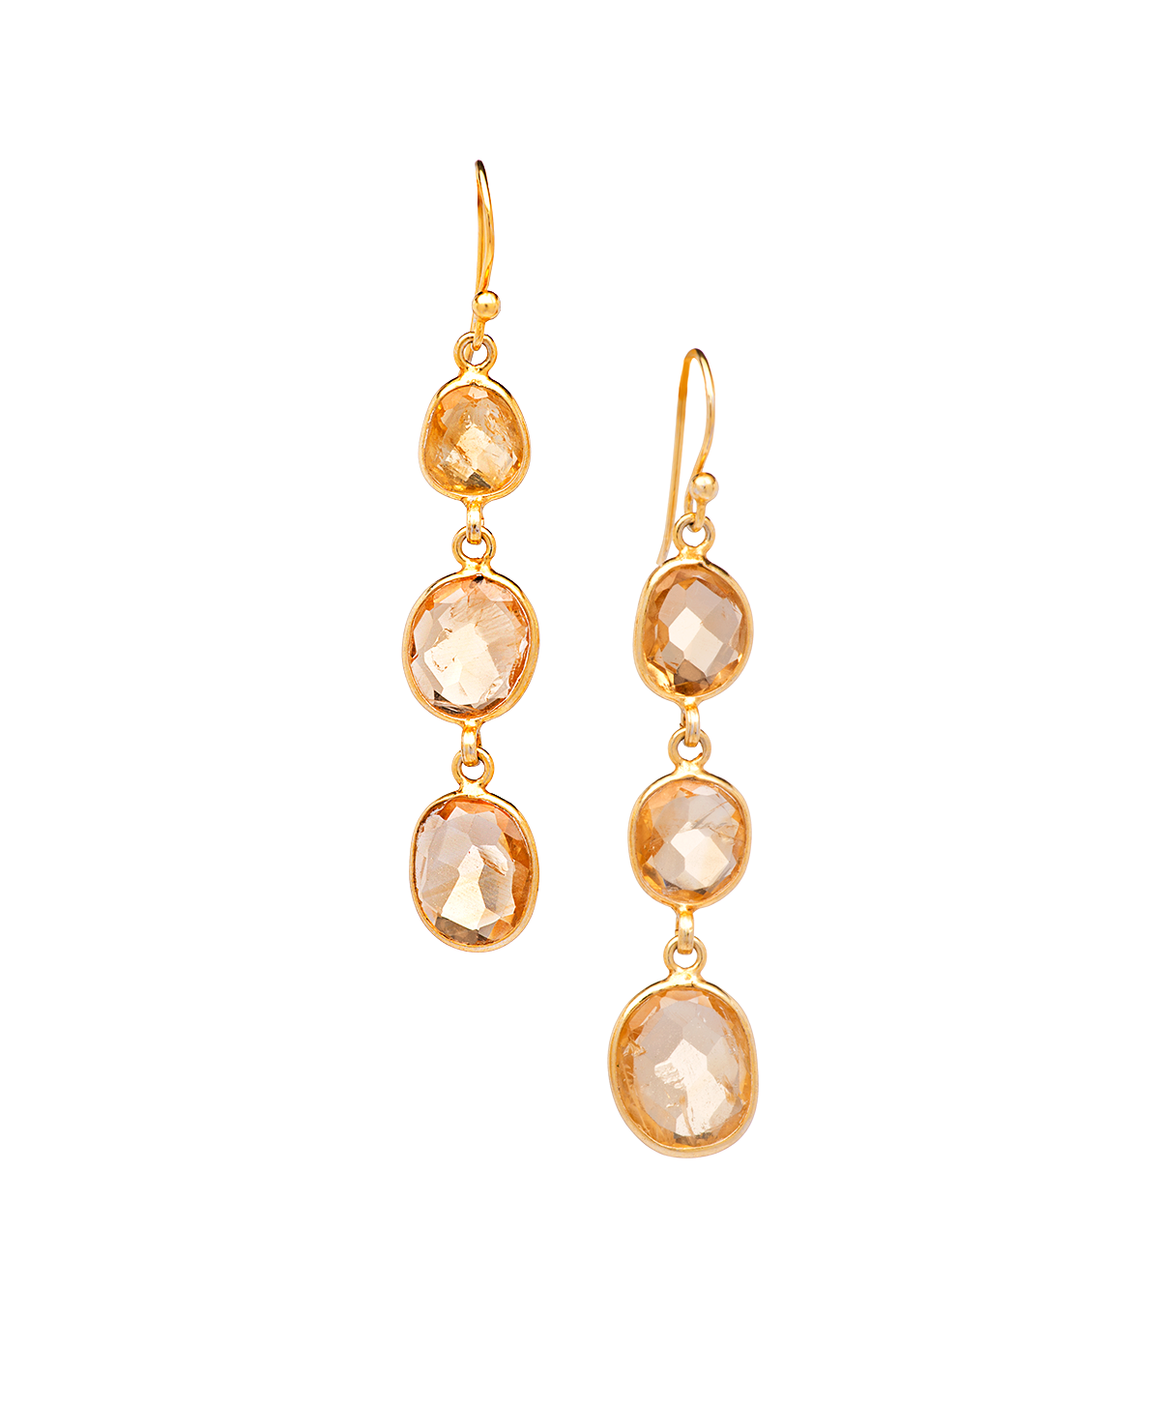 Citrine Drop Earrings in Sterling Silver 14K Yellow Gold Plated